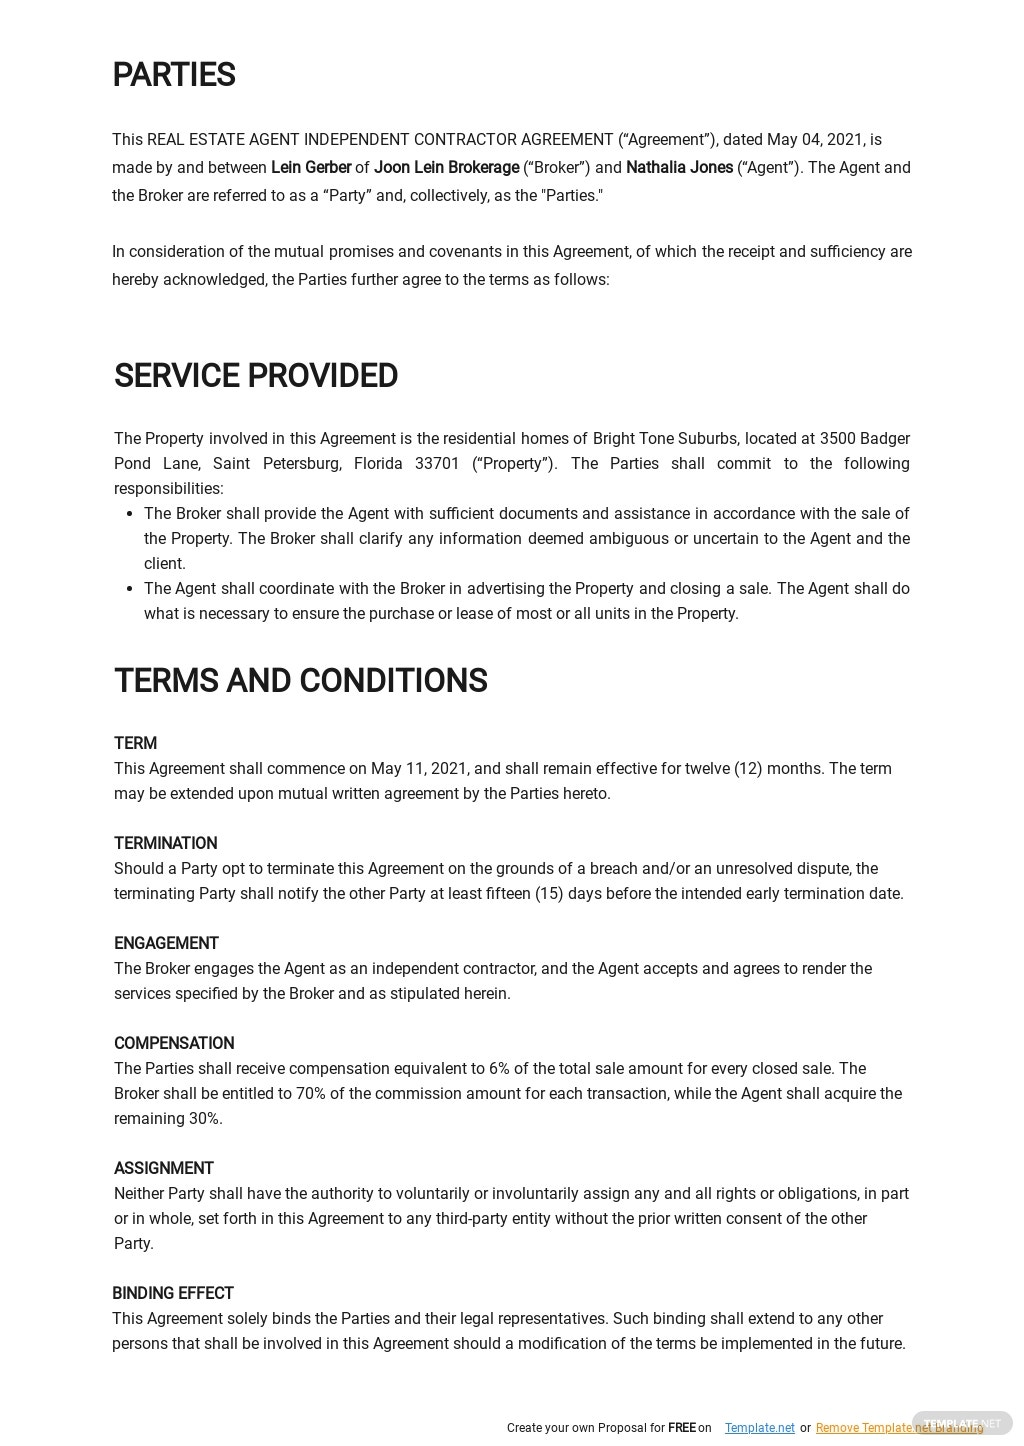 Real Estate Agent Independent Contractor Agreement Template 1.jpe